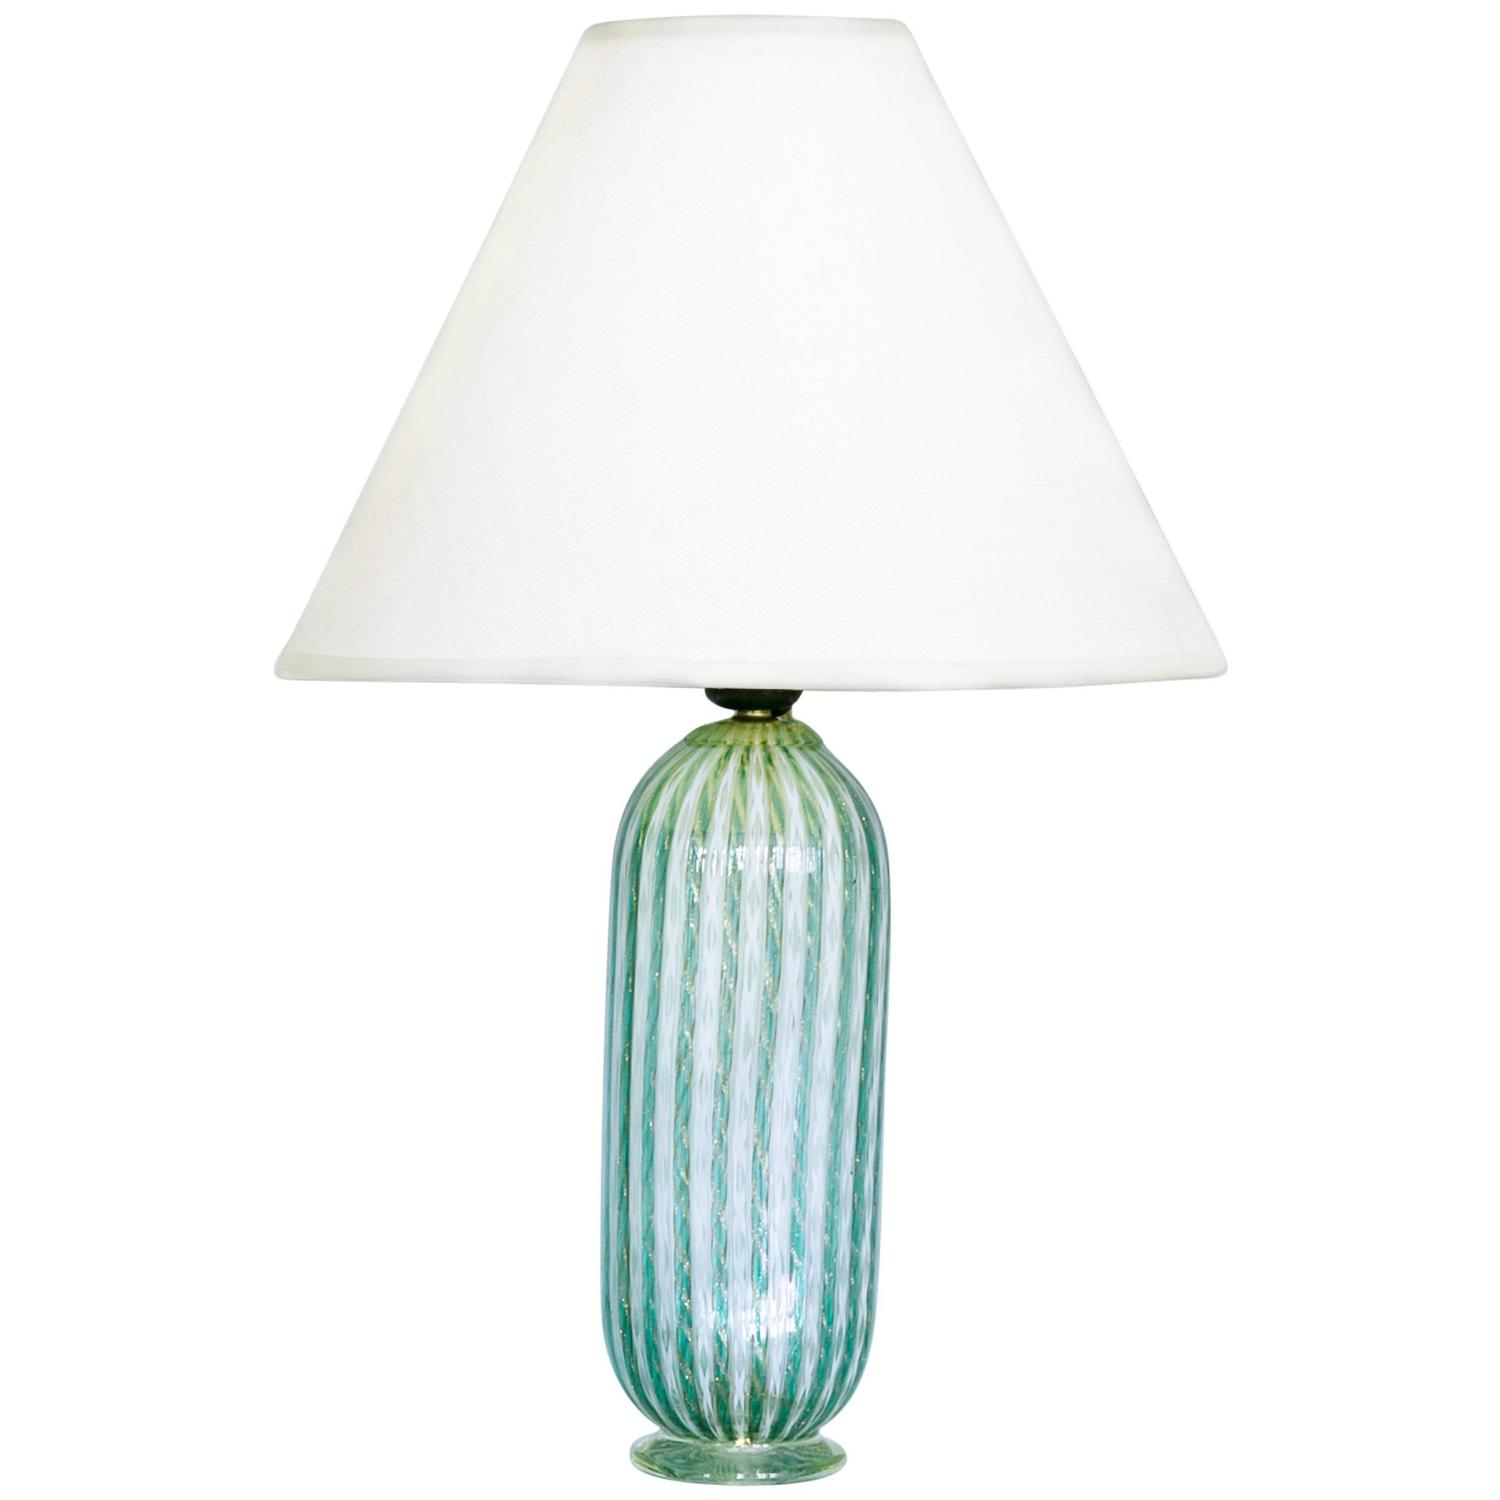 Vintage Murano Glass Table Lamp At 1stdibs